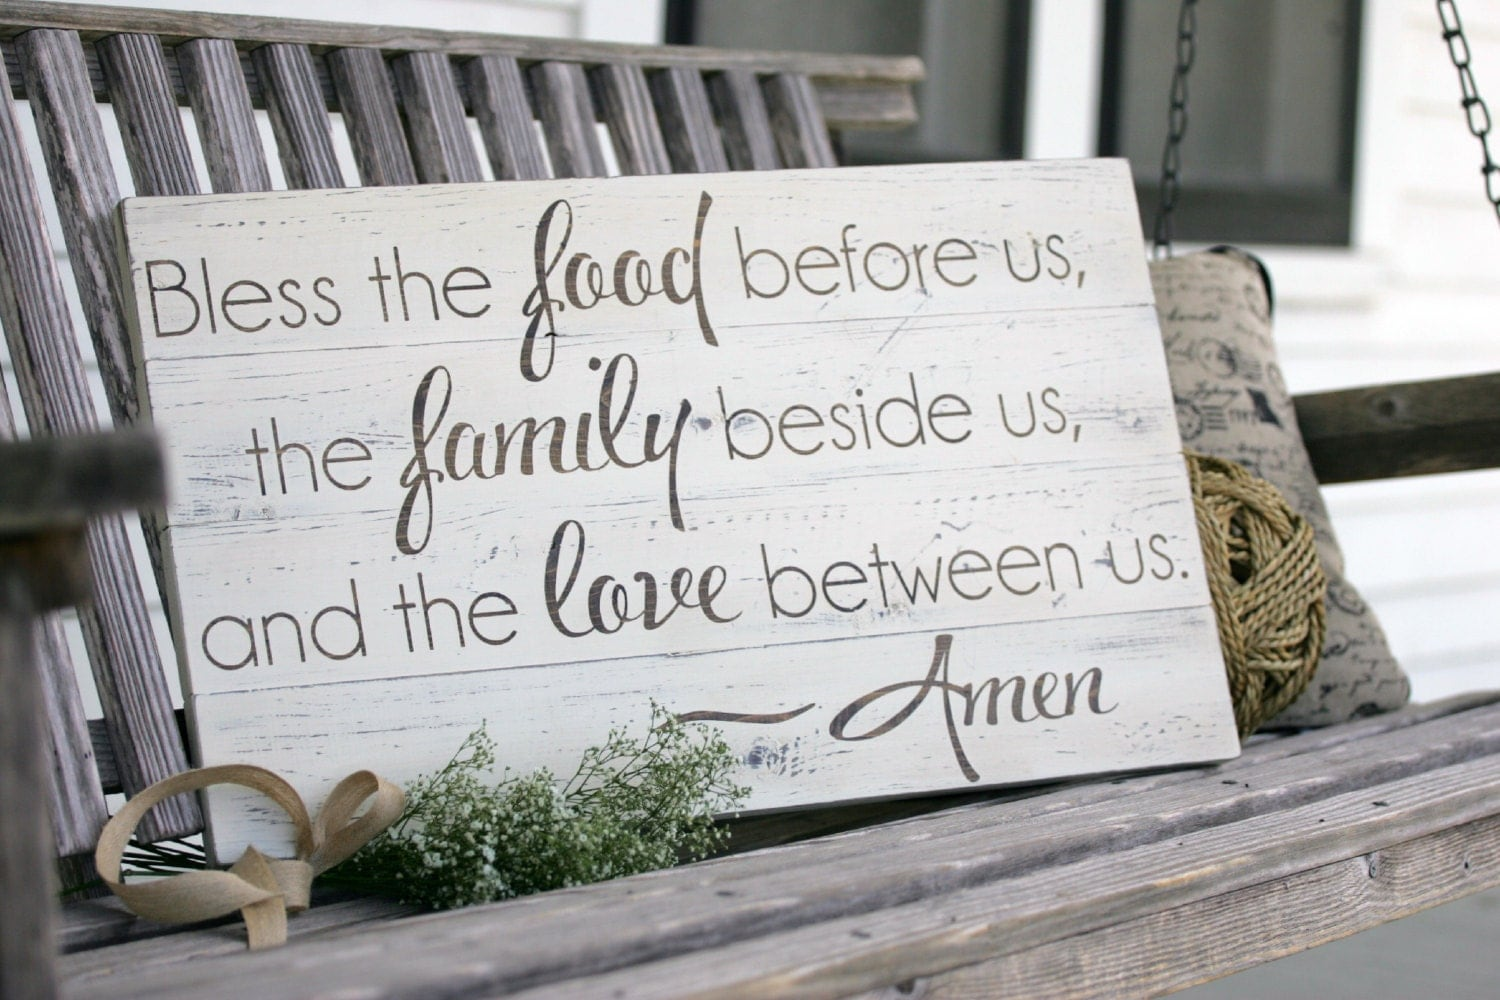 Bless the food before us Large hand painted wood sign